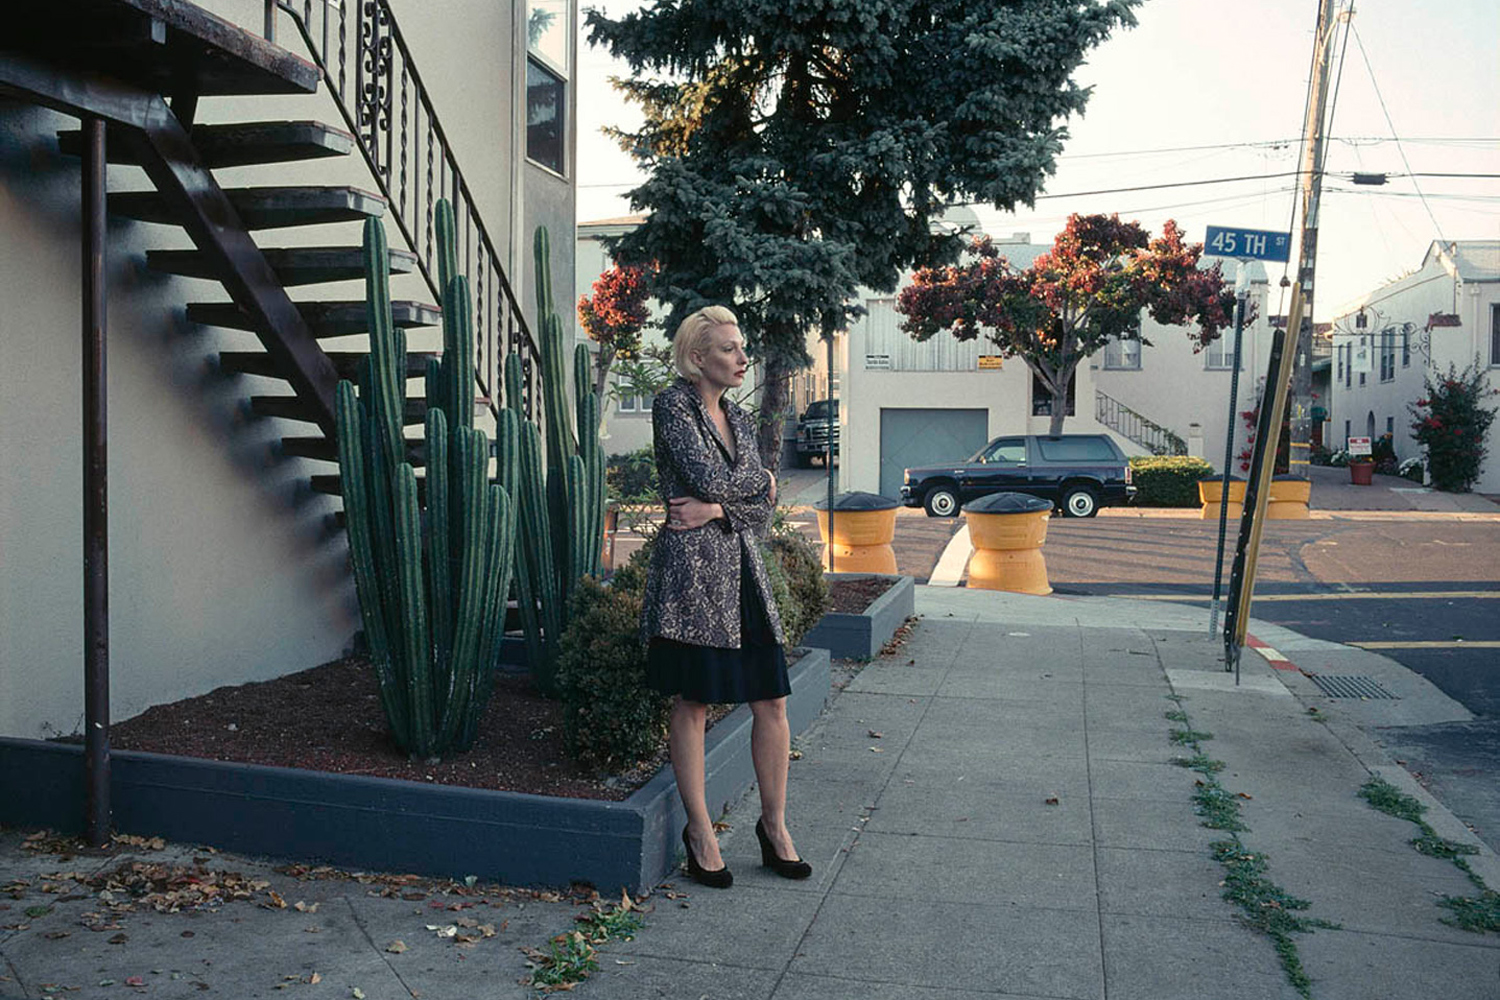 Gina #01, Emeryville, CA, 2007. From the series She.